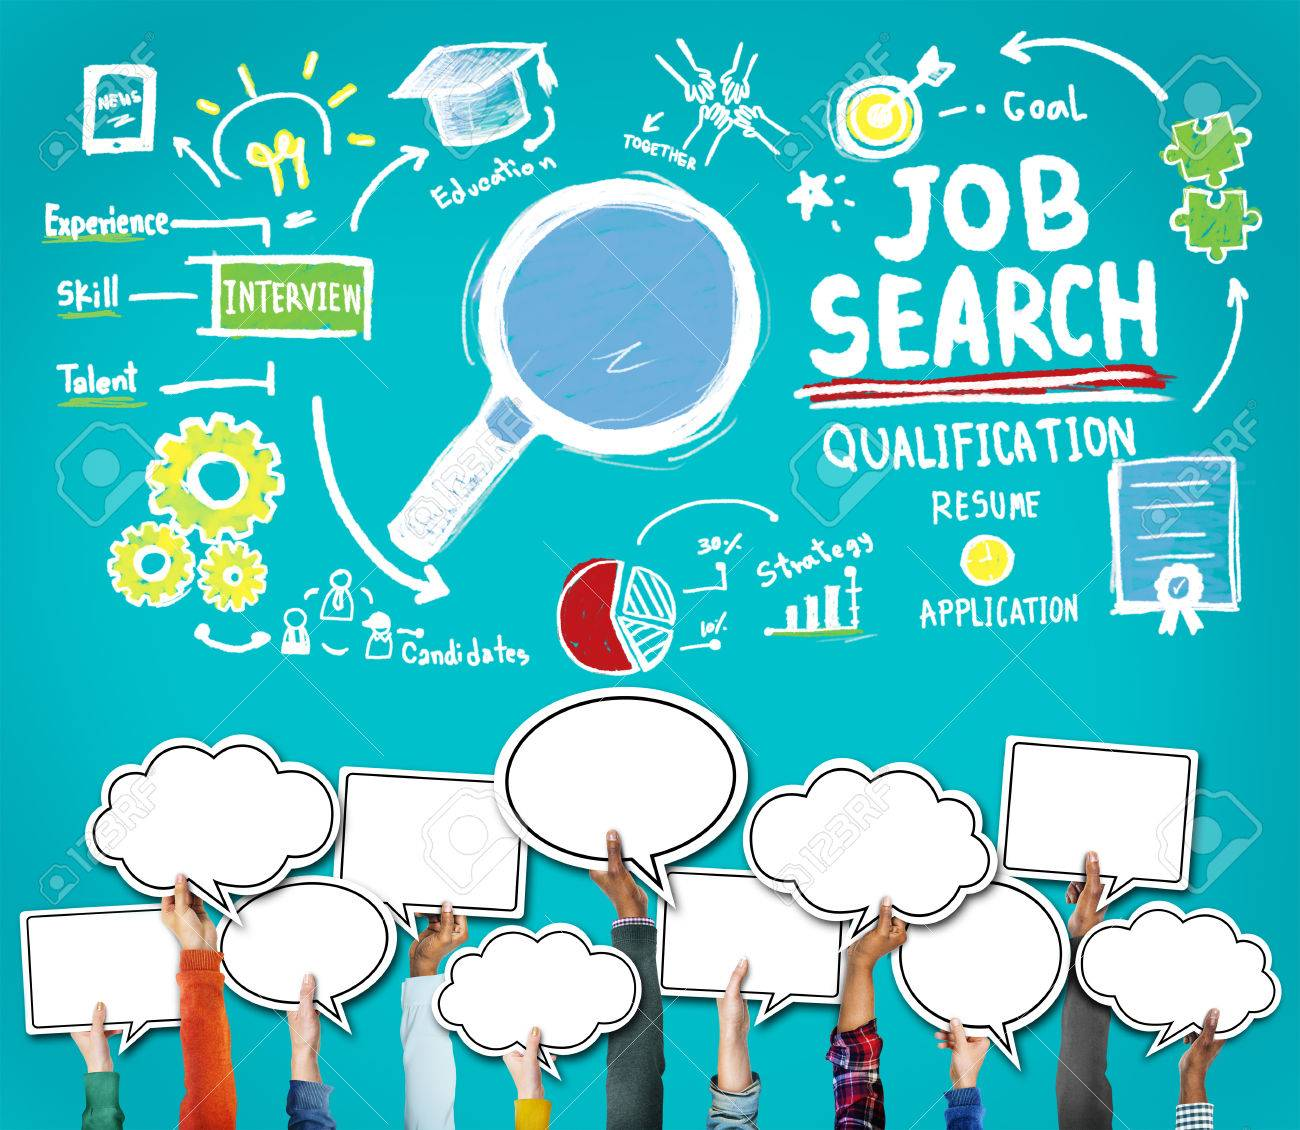 Job Search Qualification Resume Recruitment Hiring Application ...